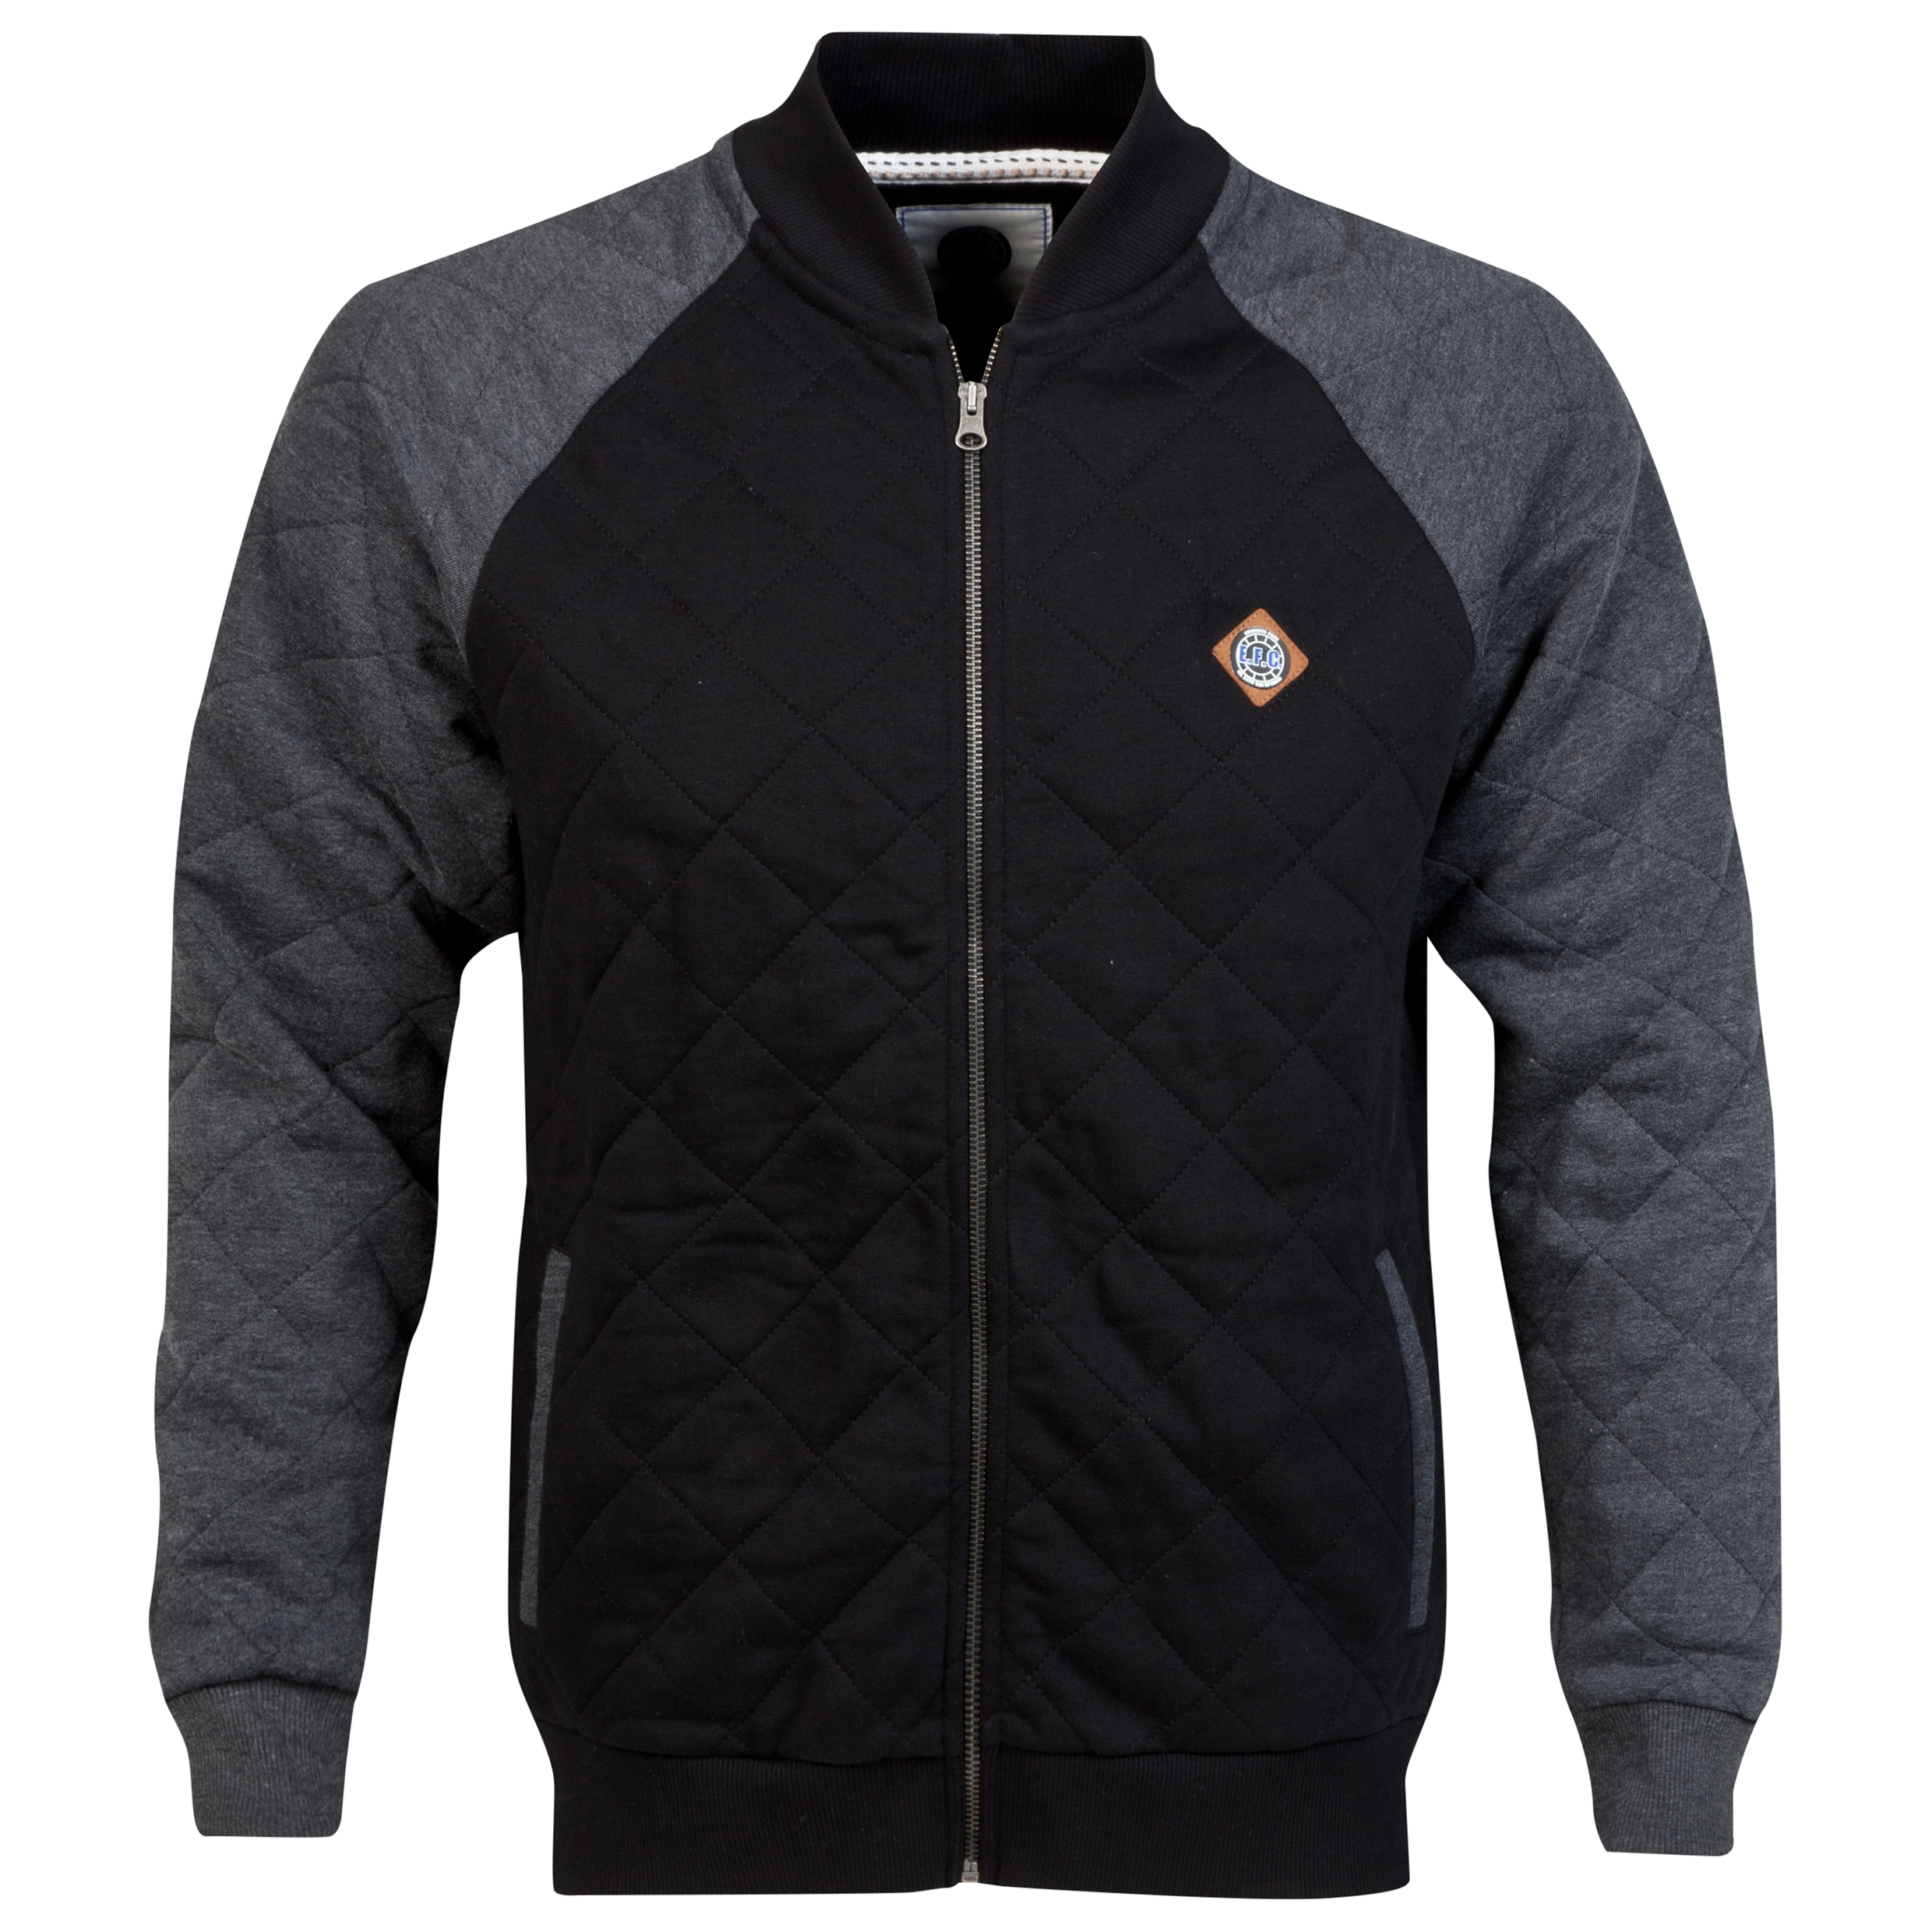 Everton Bomber Jacket - Black/Grey - Mens